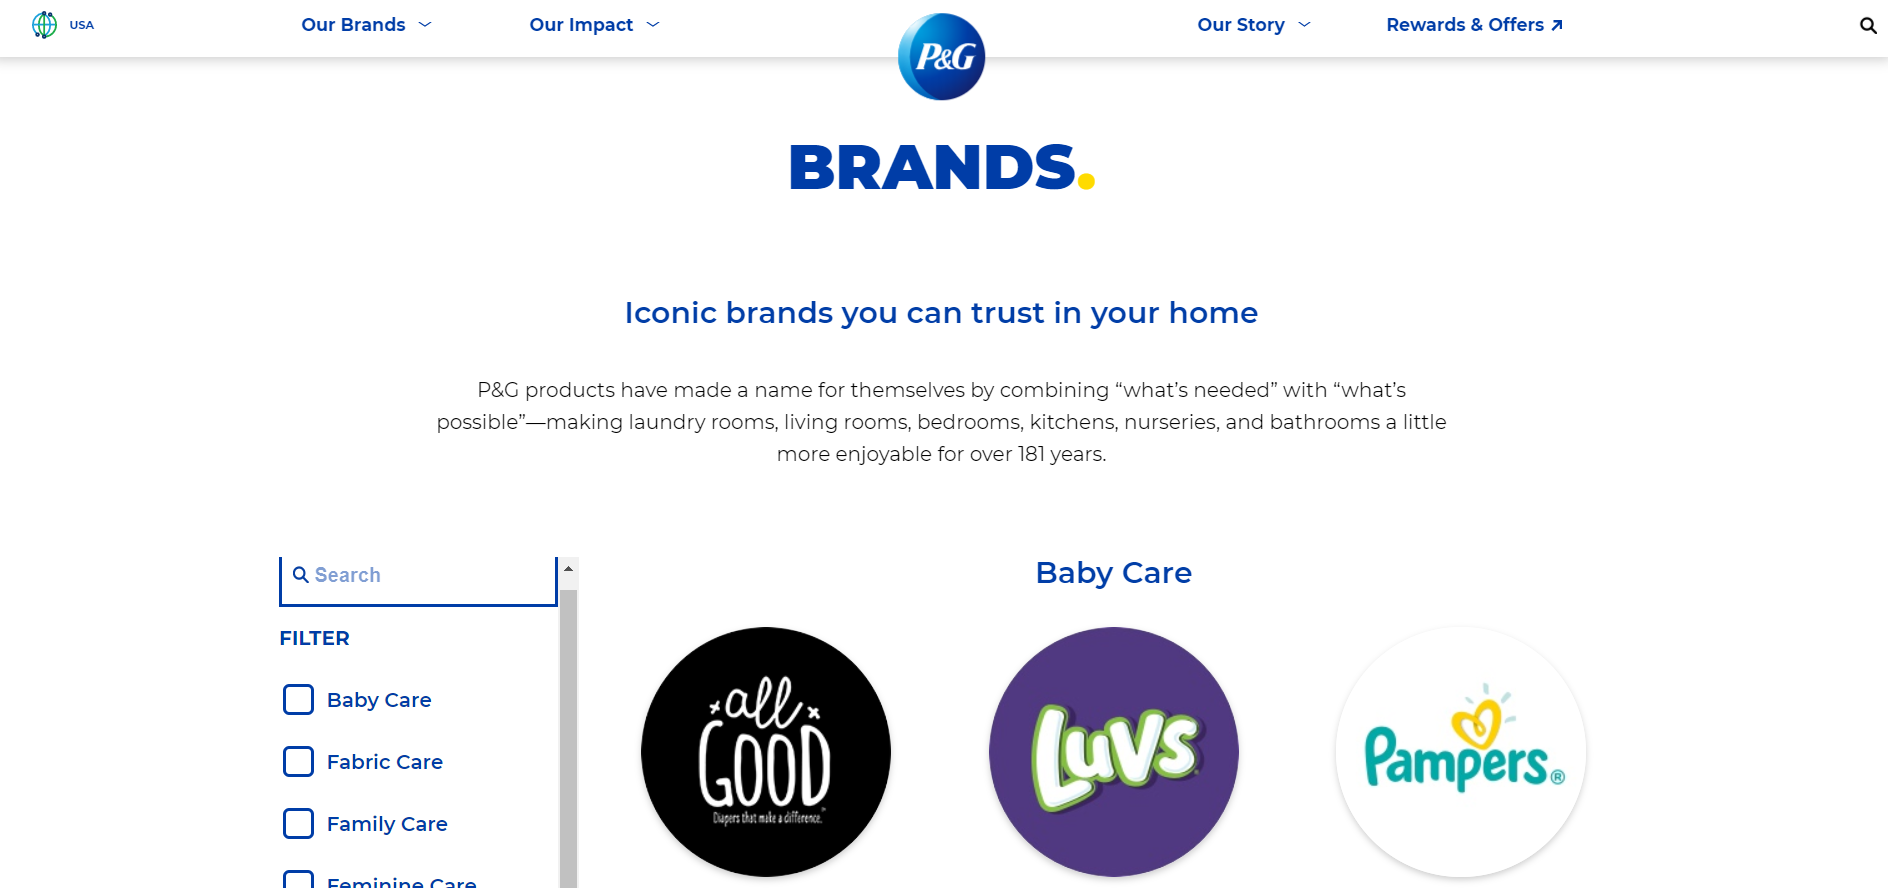 product life cycle on products - Procter & Gamble example